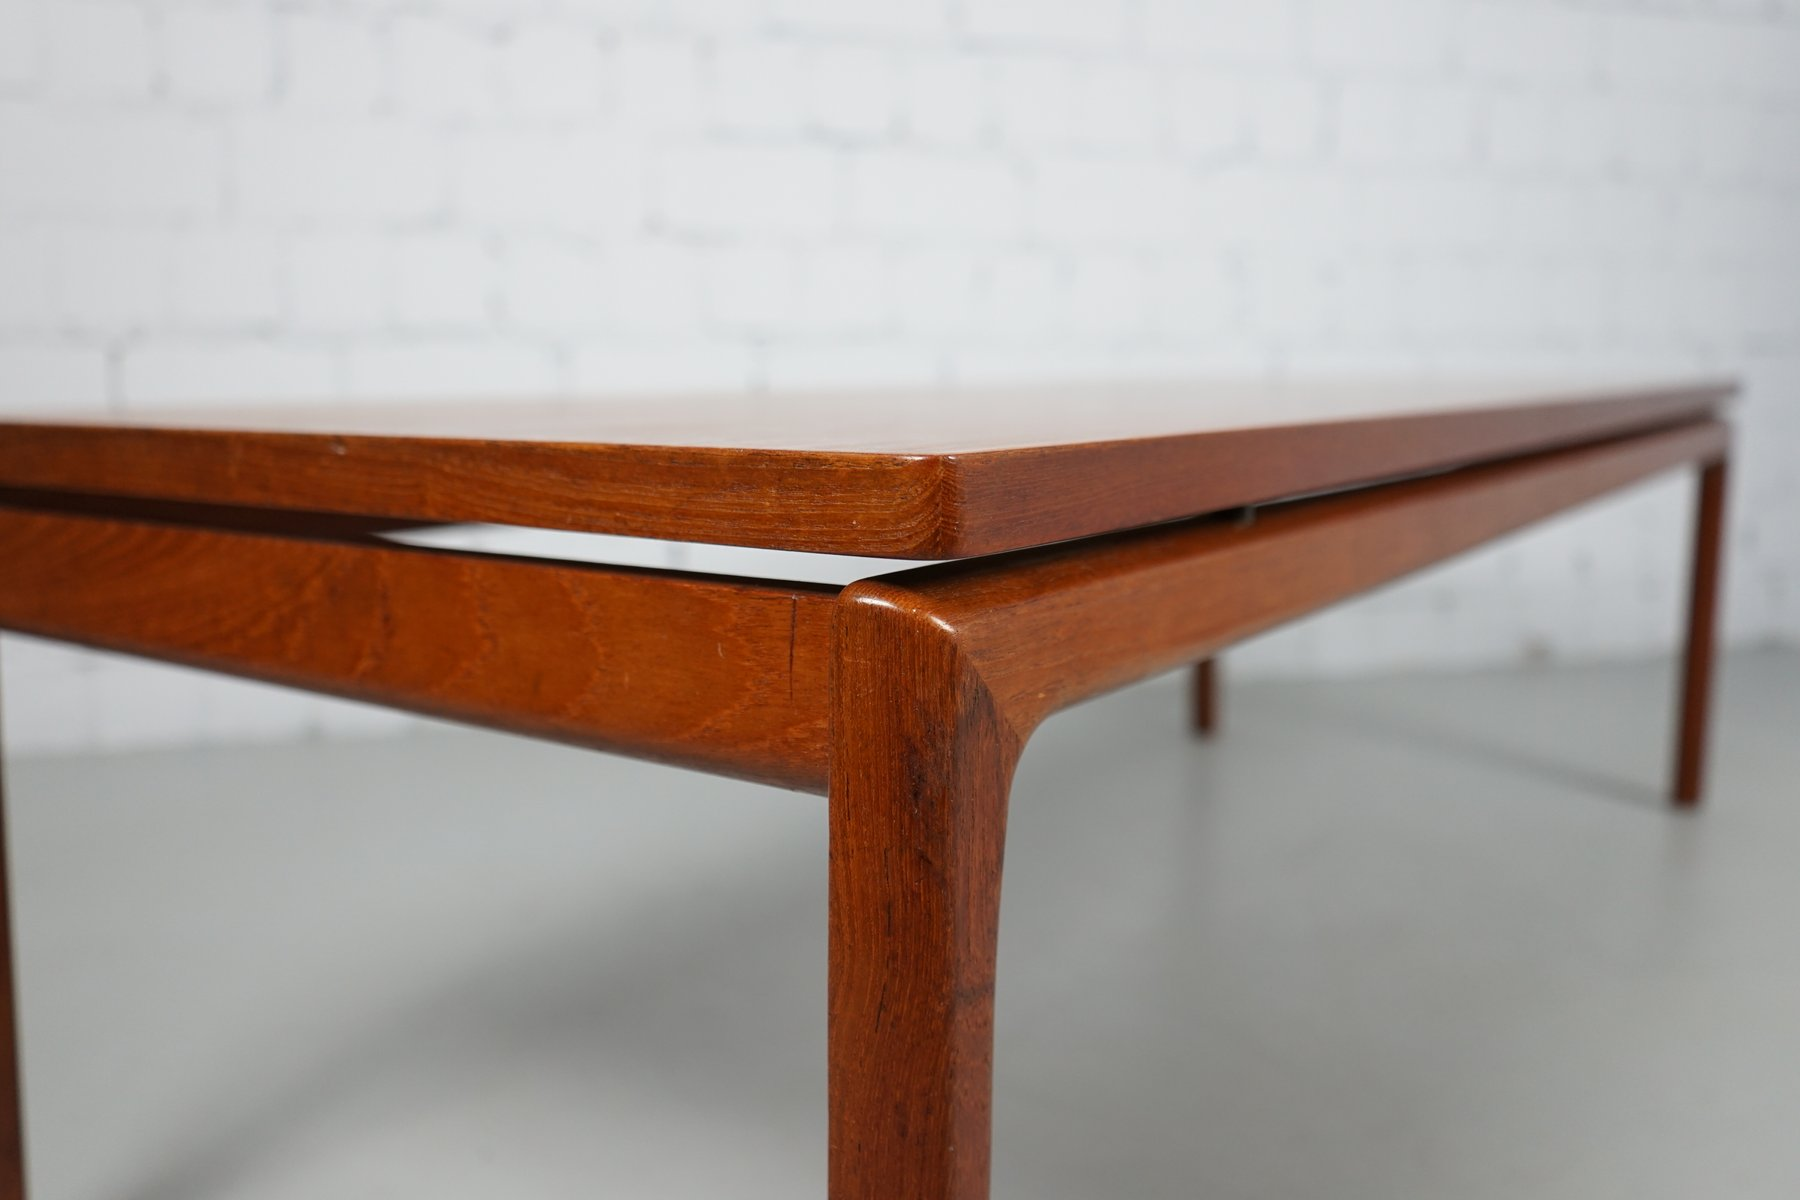 Teak Coffee Table by Ole Wanscher for France & S¸n 1960s for sale